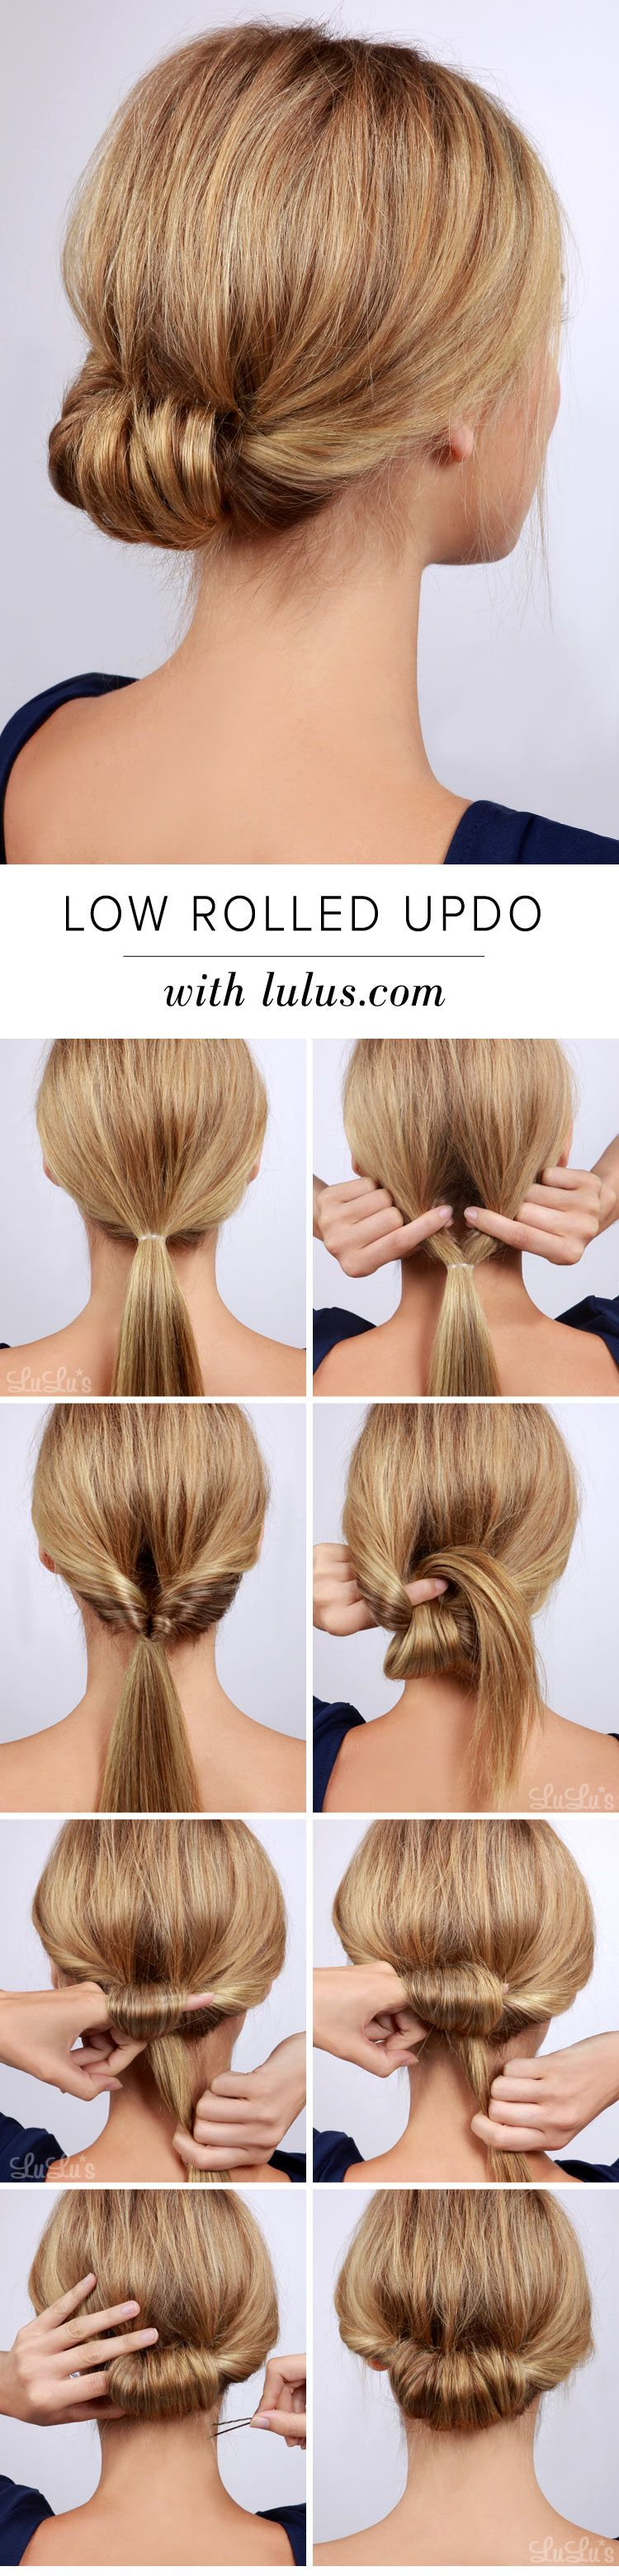 LuLu*s How To: Low Rolled Updo Hair Tutorial At LuLus.com!